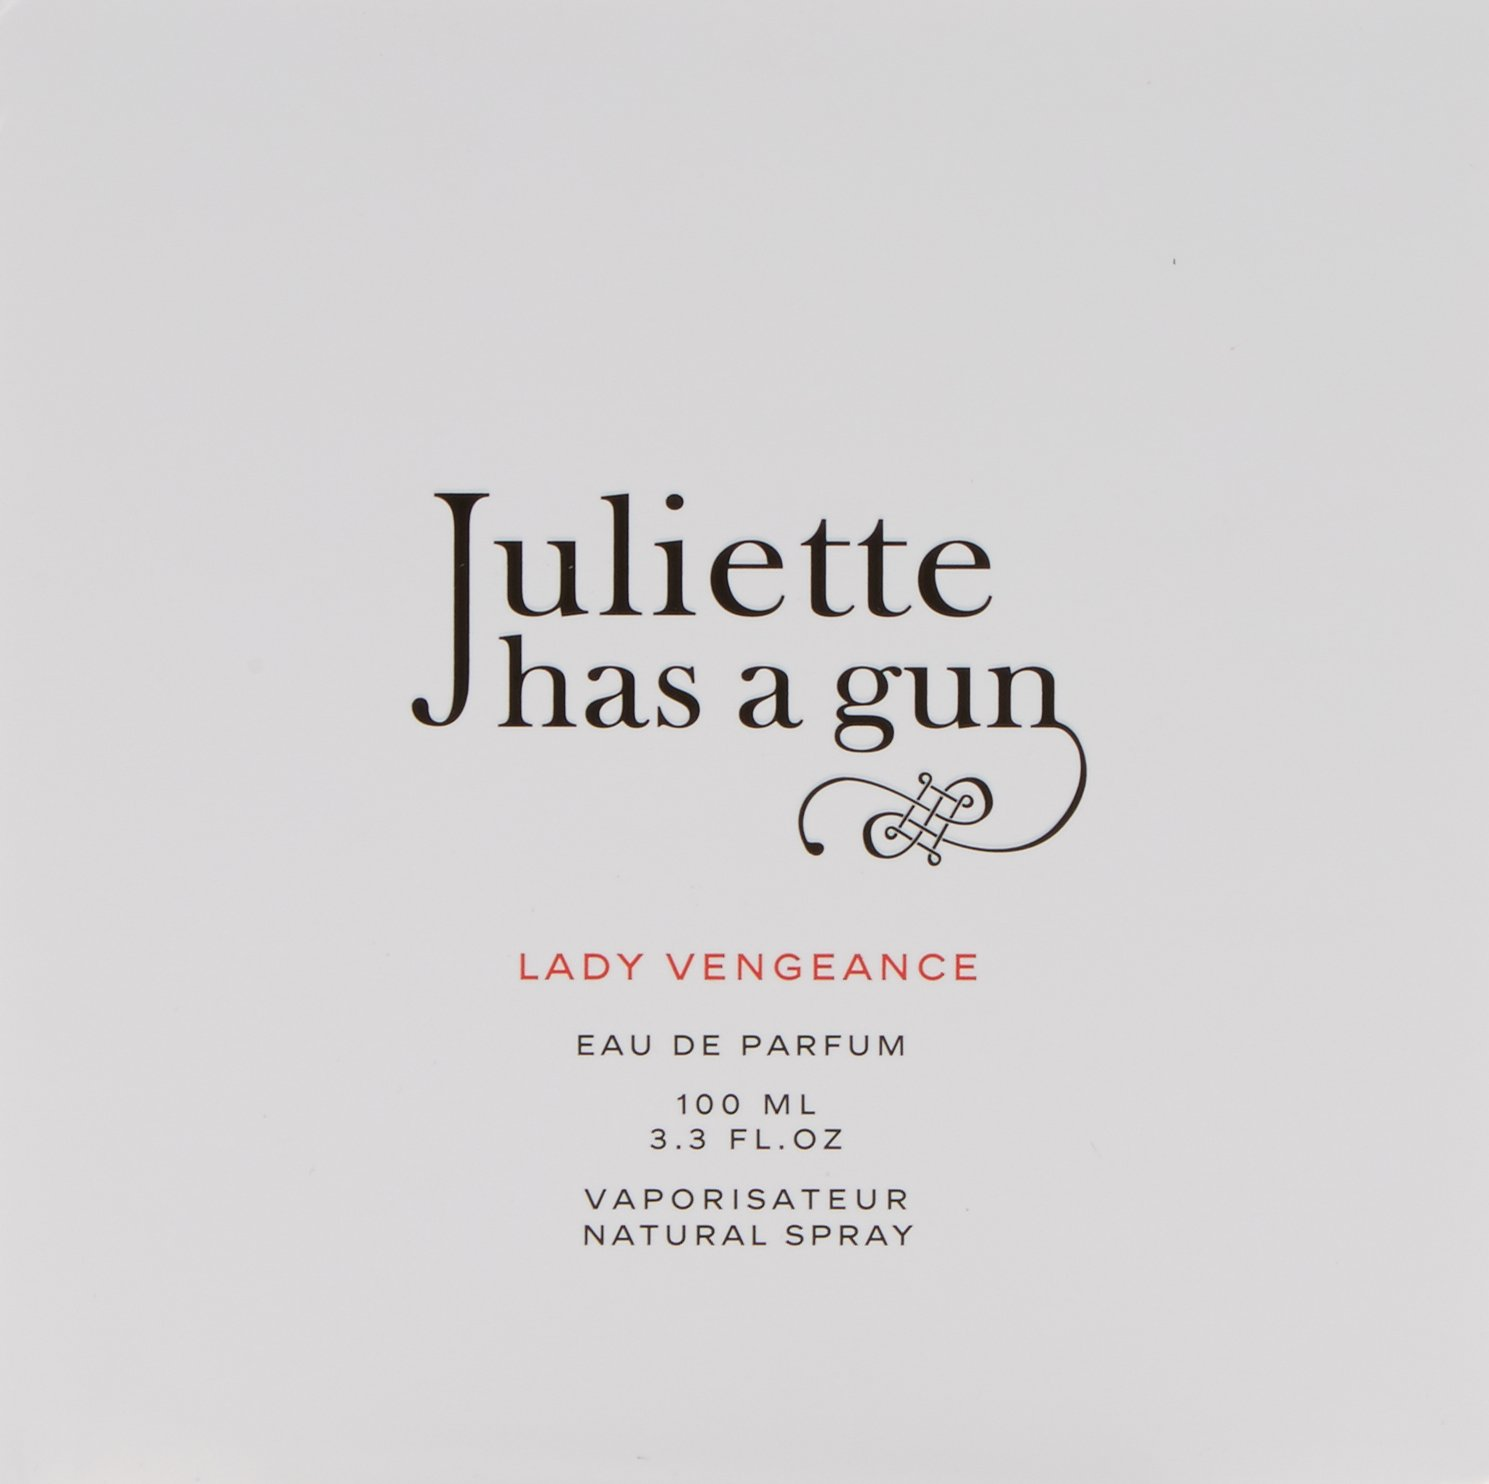 Juliette Has A Gun Lady Vengeance Eau de Parfum Spray, 3.3 fl. oz.